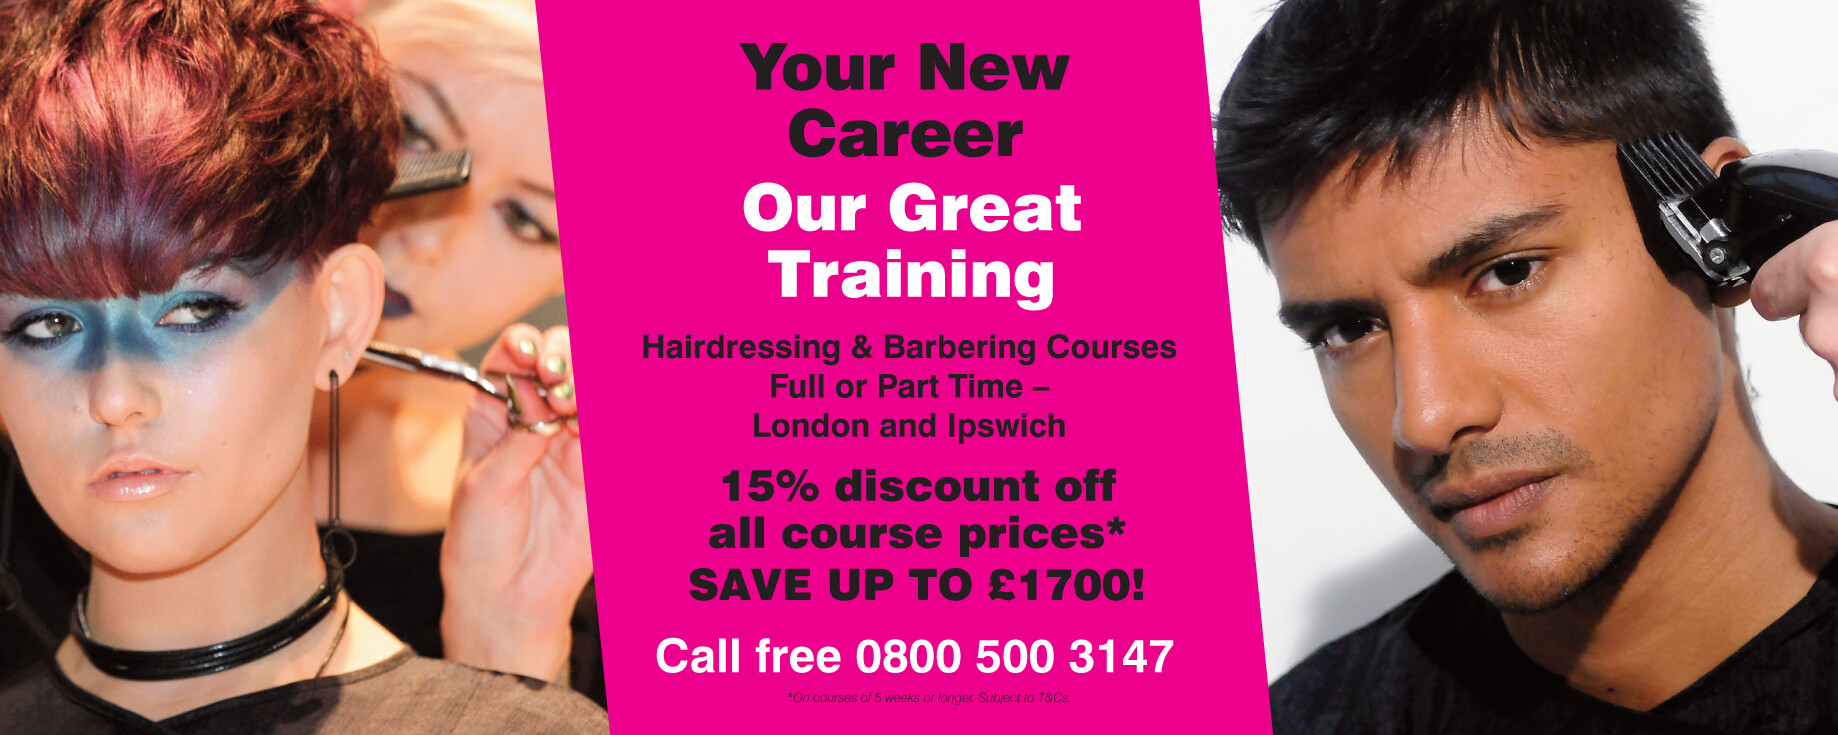 15% off all hairdressing & barbering courses